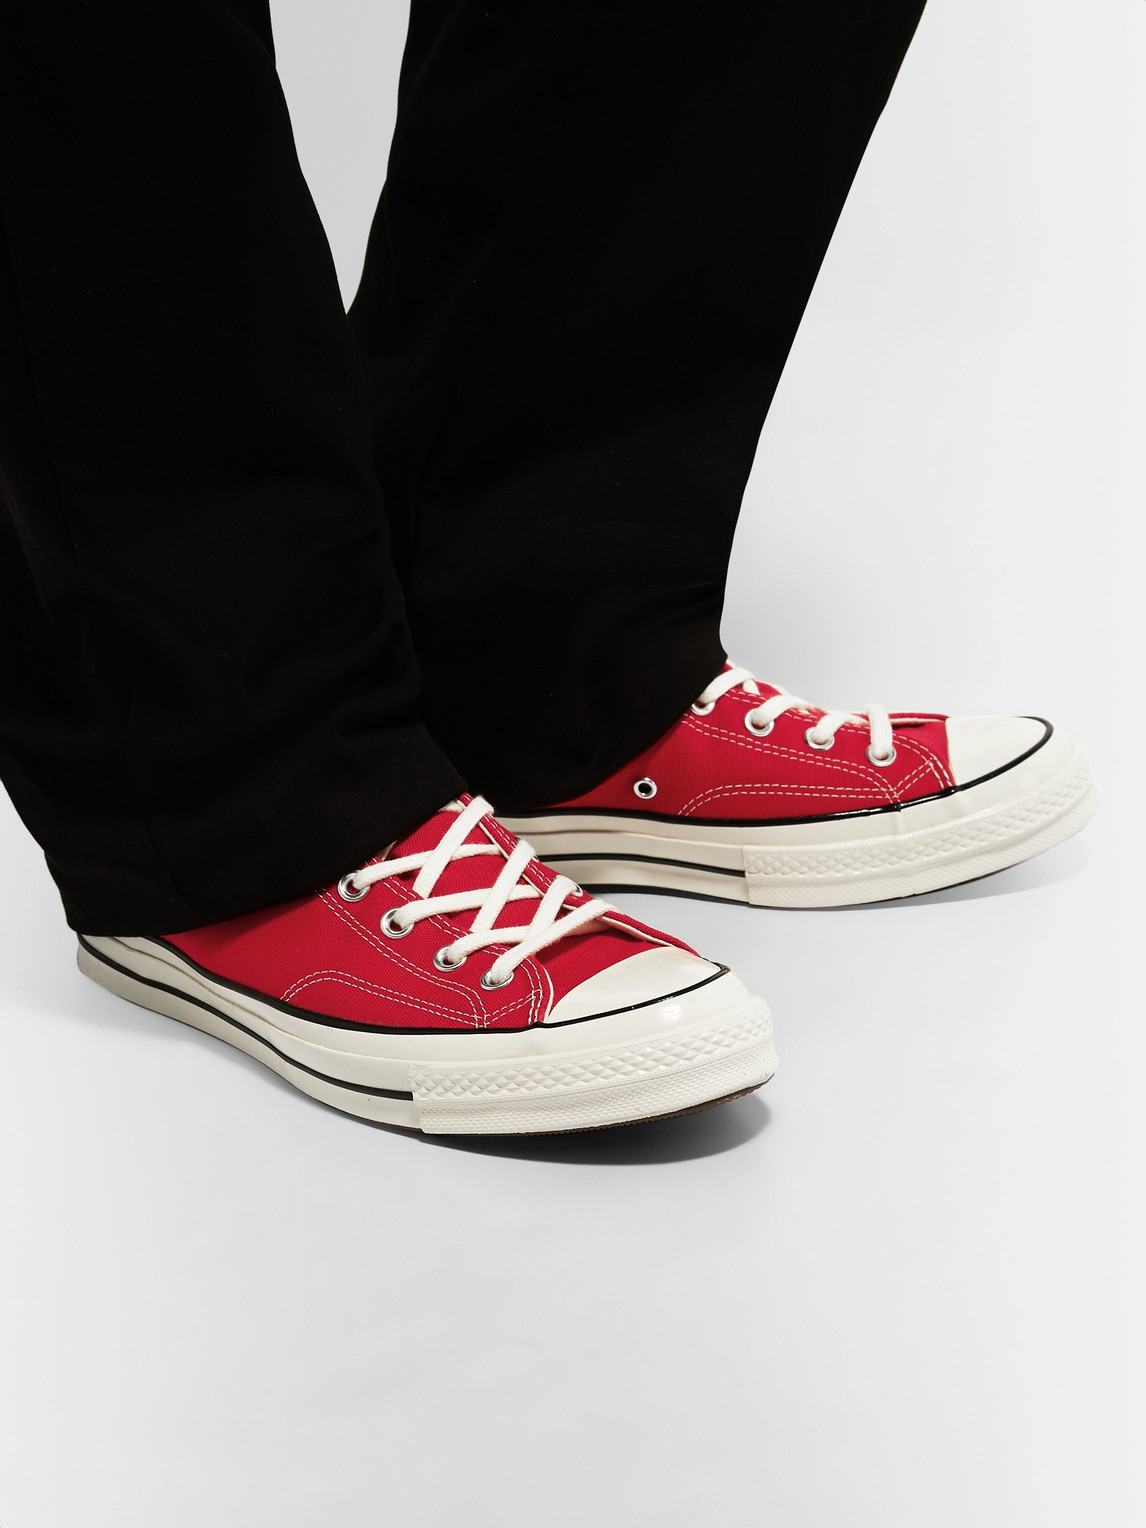 Converse Sneakers CHUCK 70 CANVAS HIGH-TOP SNEAKERS